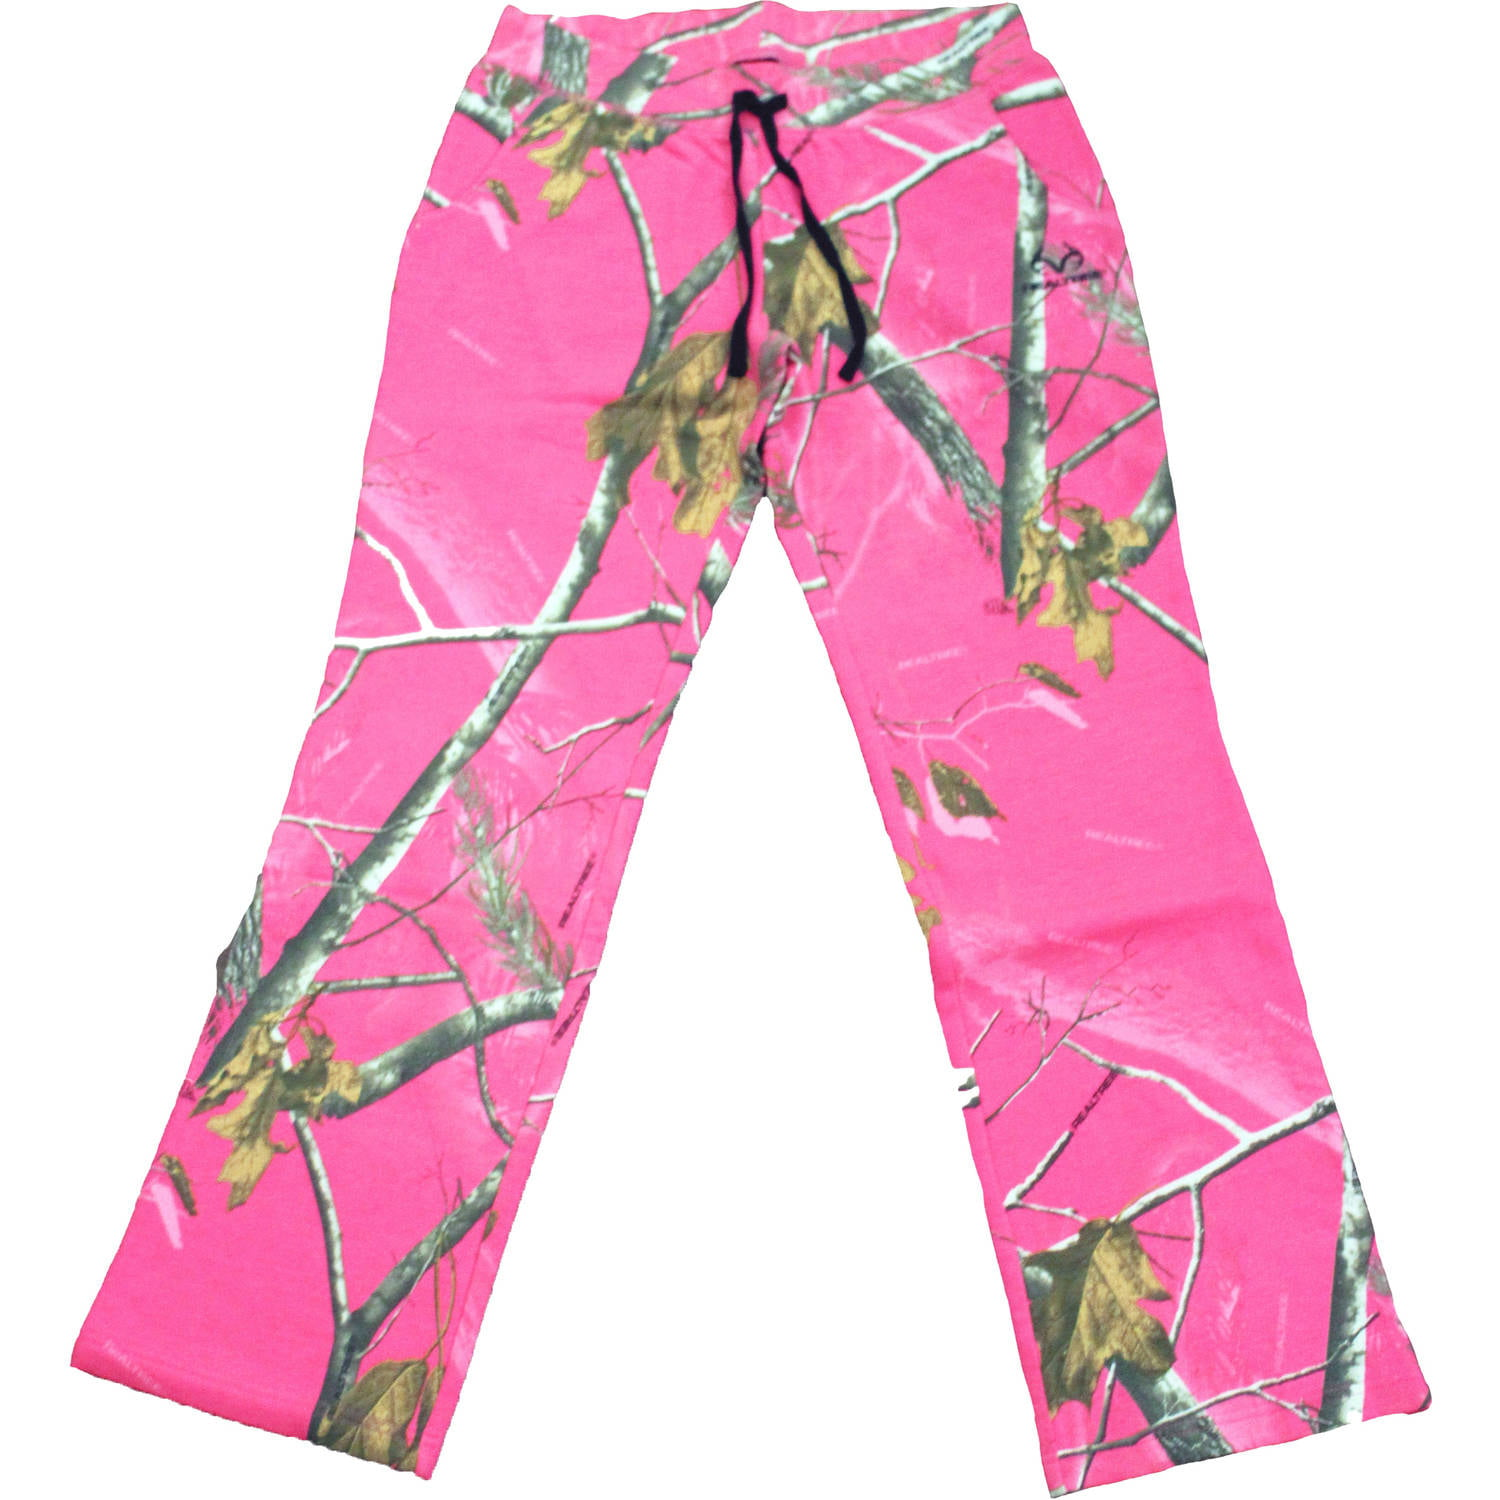 Mossy Oak Women's Fleece Camo Sweatpants, MO Breakup Country by Generic